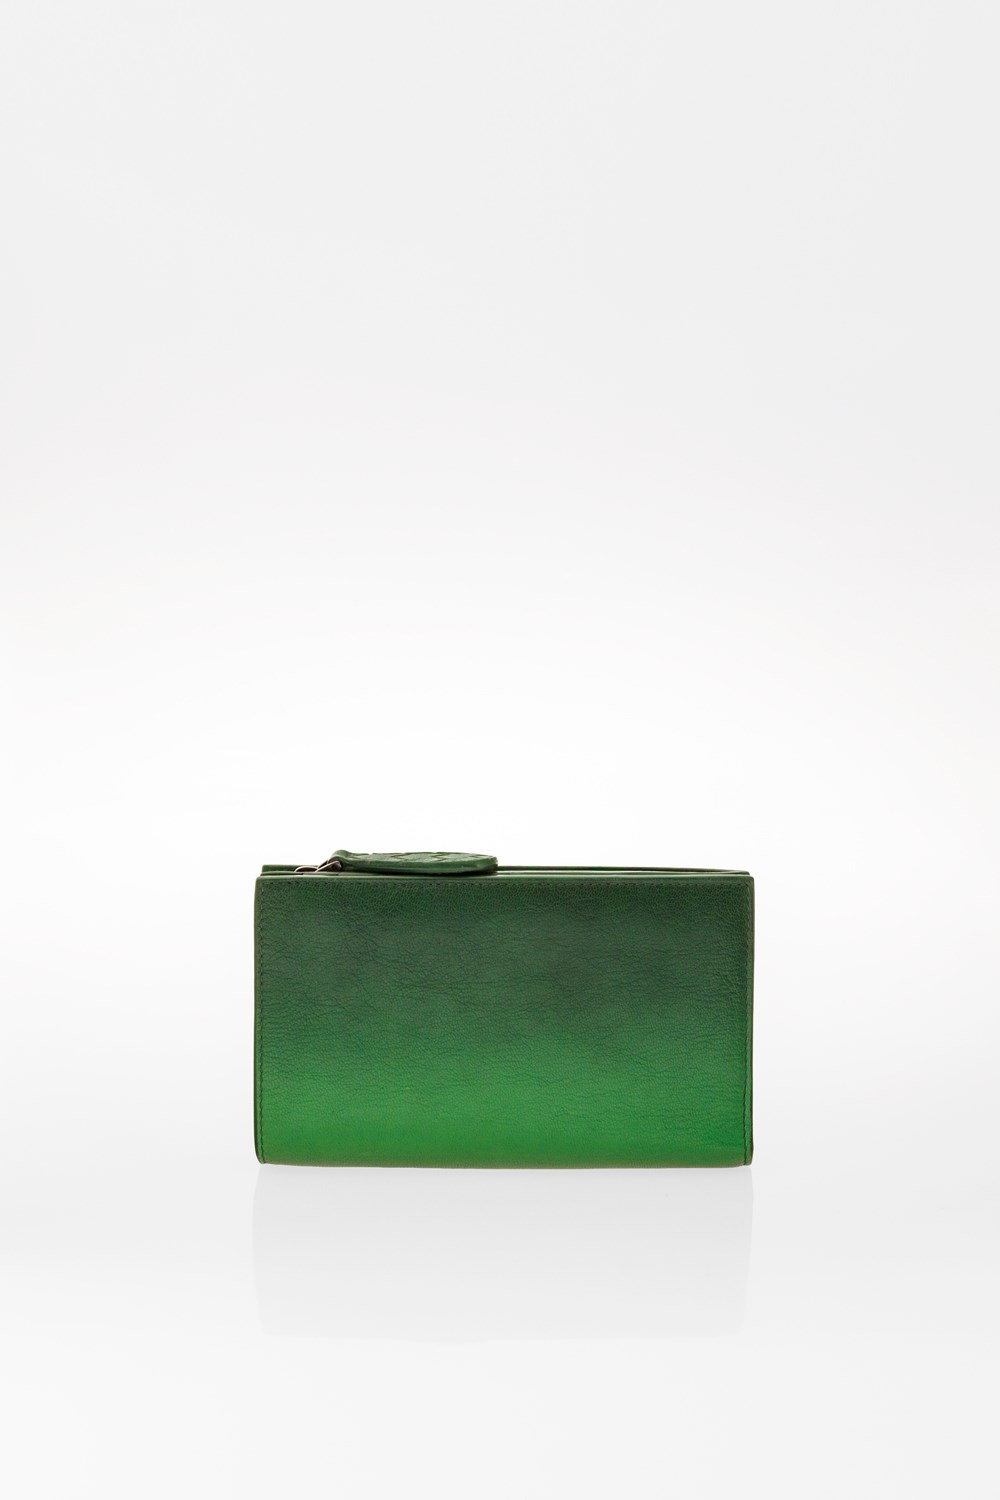 fb9acc5a1d Green Graduated Leather Wallet